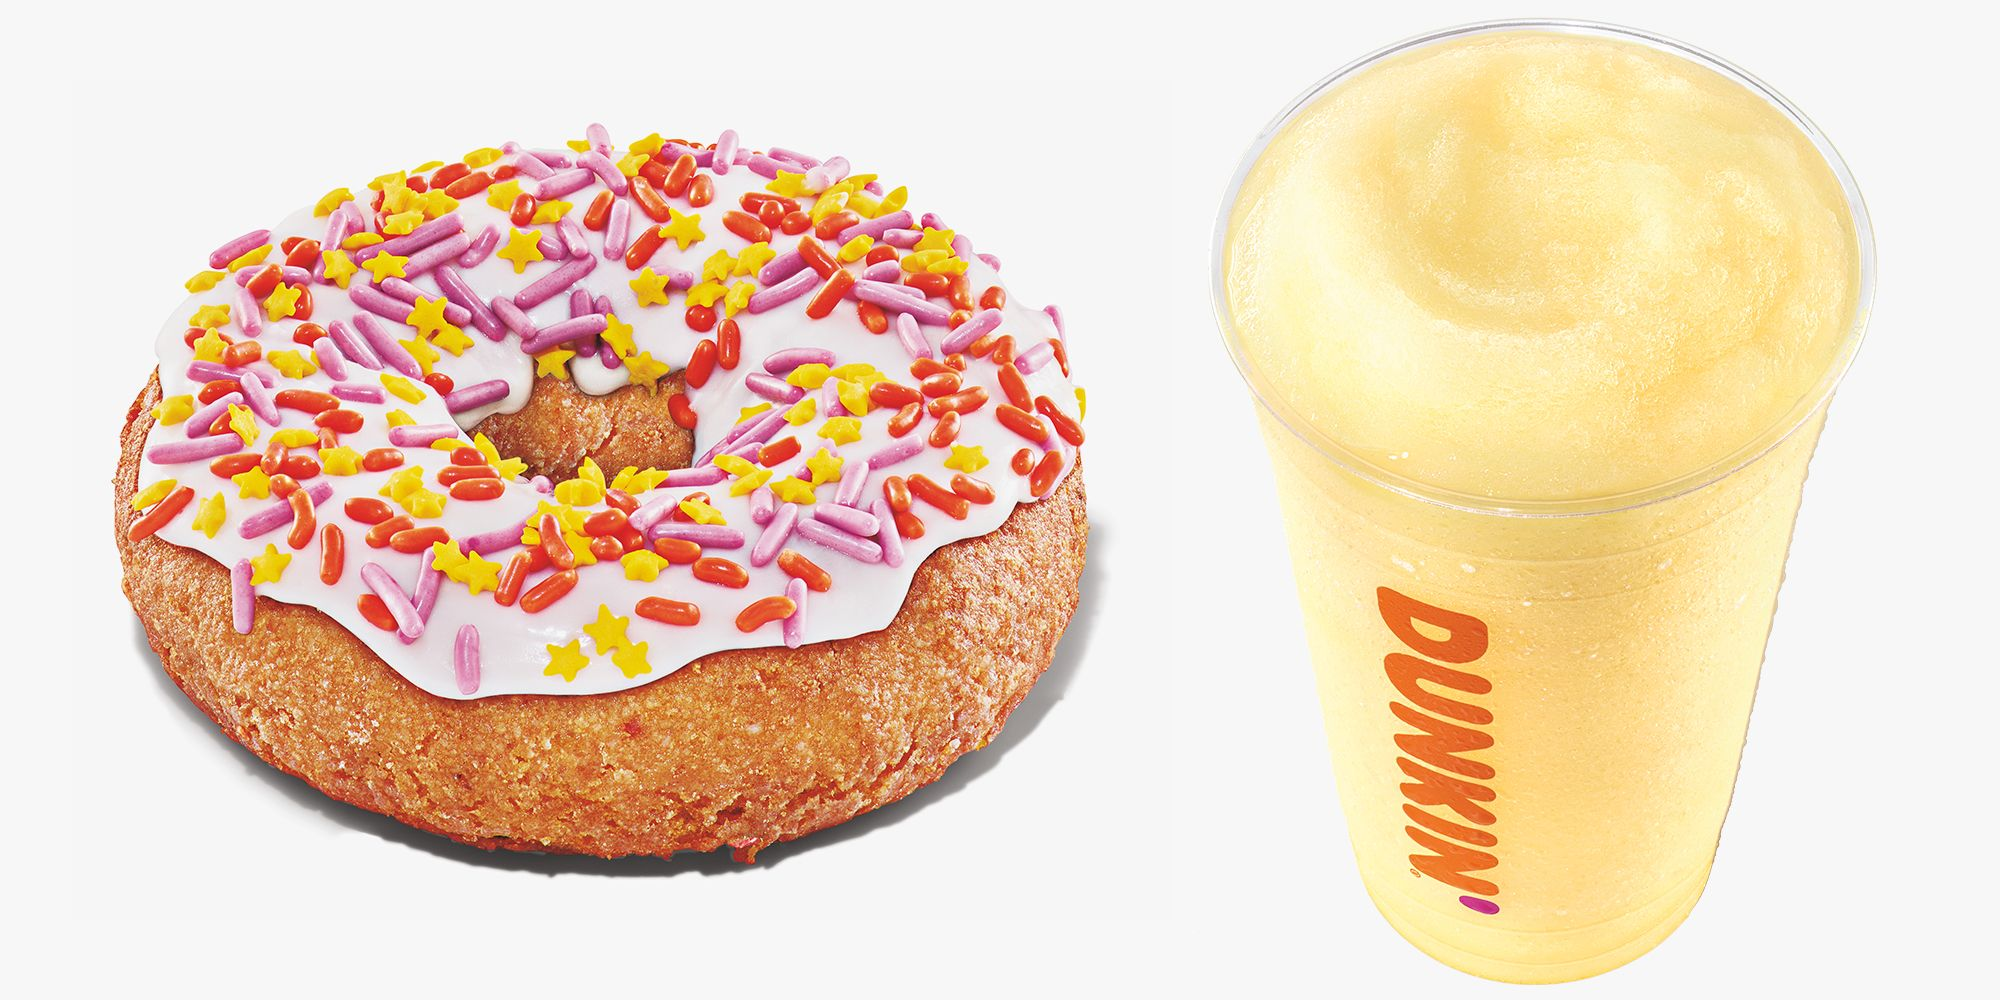 Dunkin' Simply Launched a Birthday Cake-Flavored